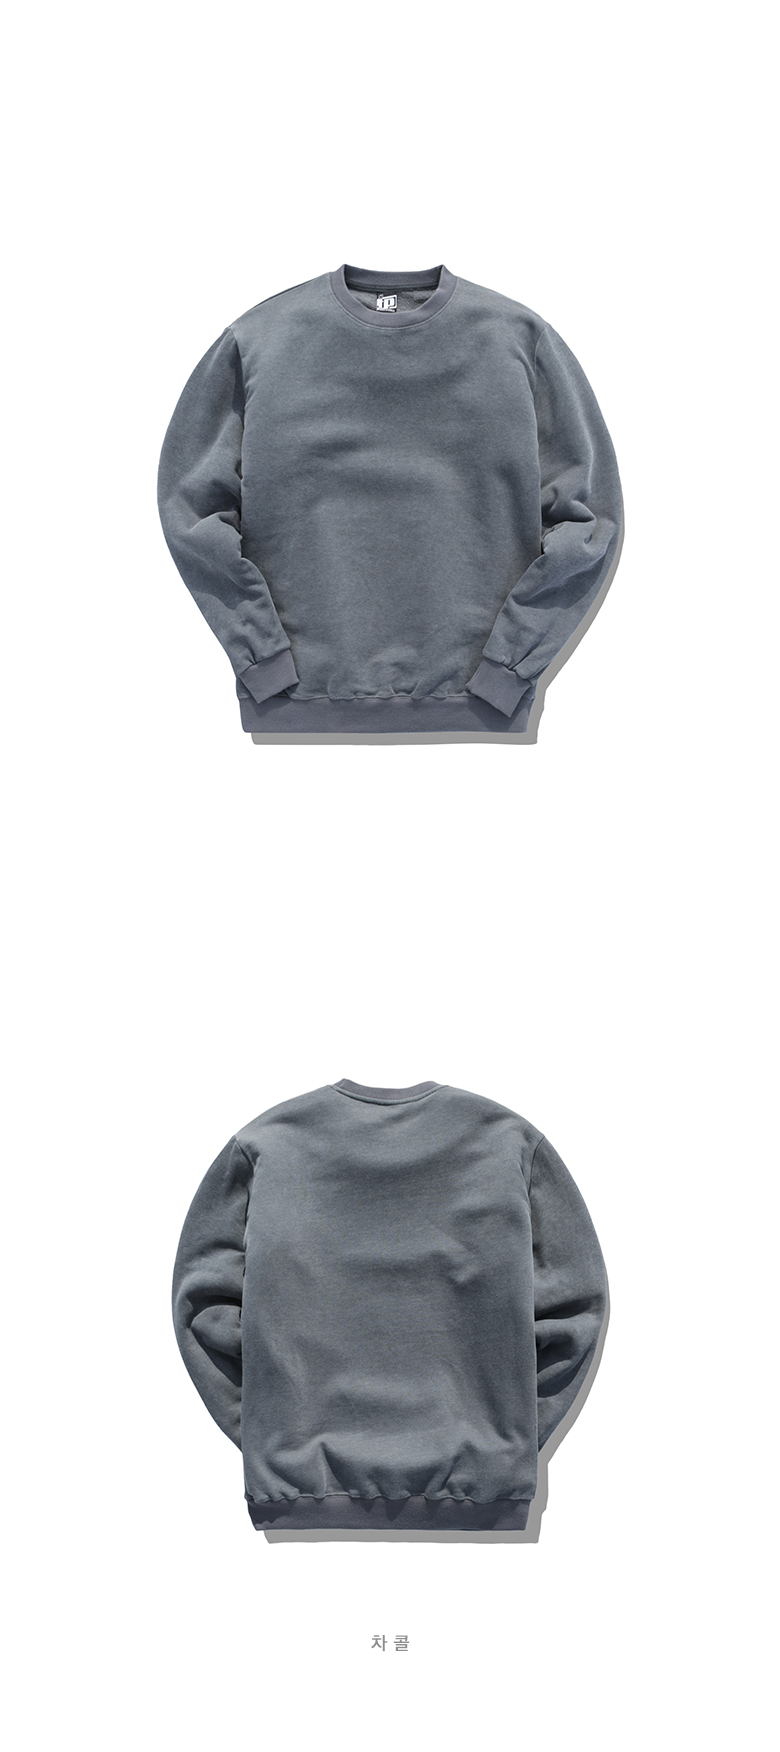 20180912_fp_pigment_sweatshirt_charcoal_uk_01.jpg